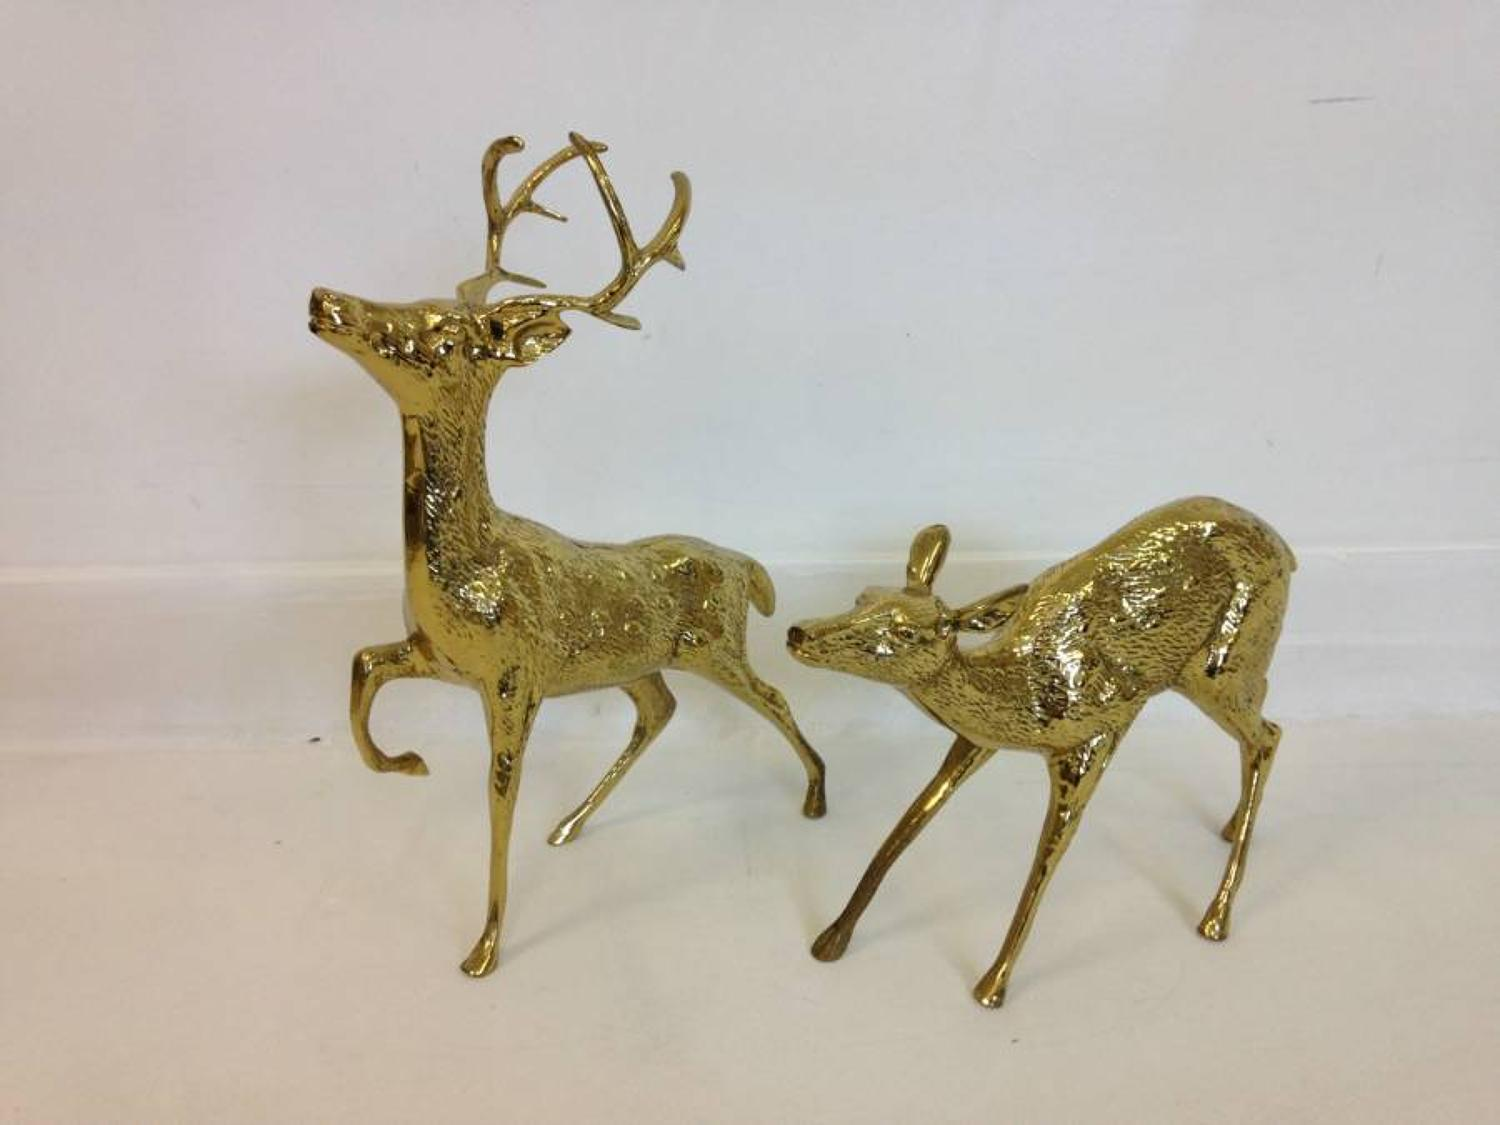 A pair of vintage brass reindeers